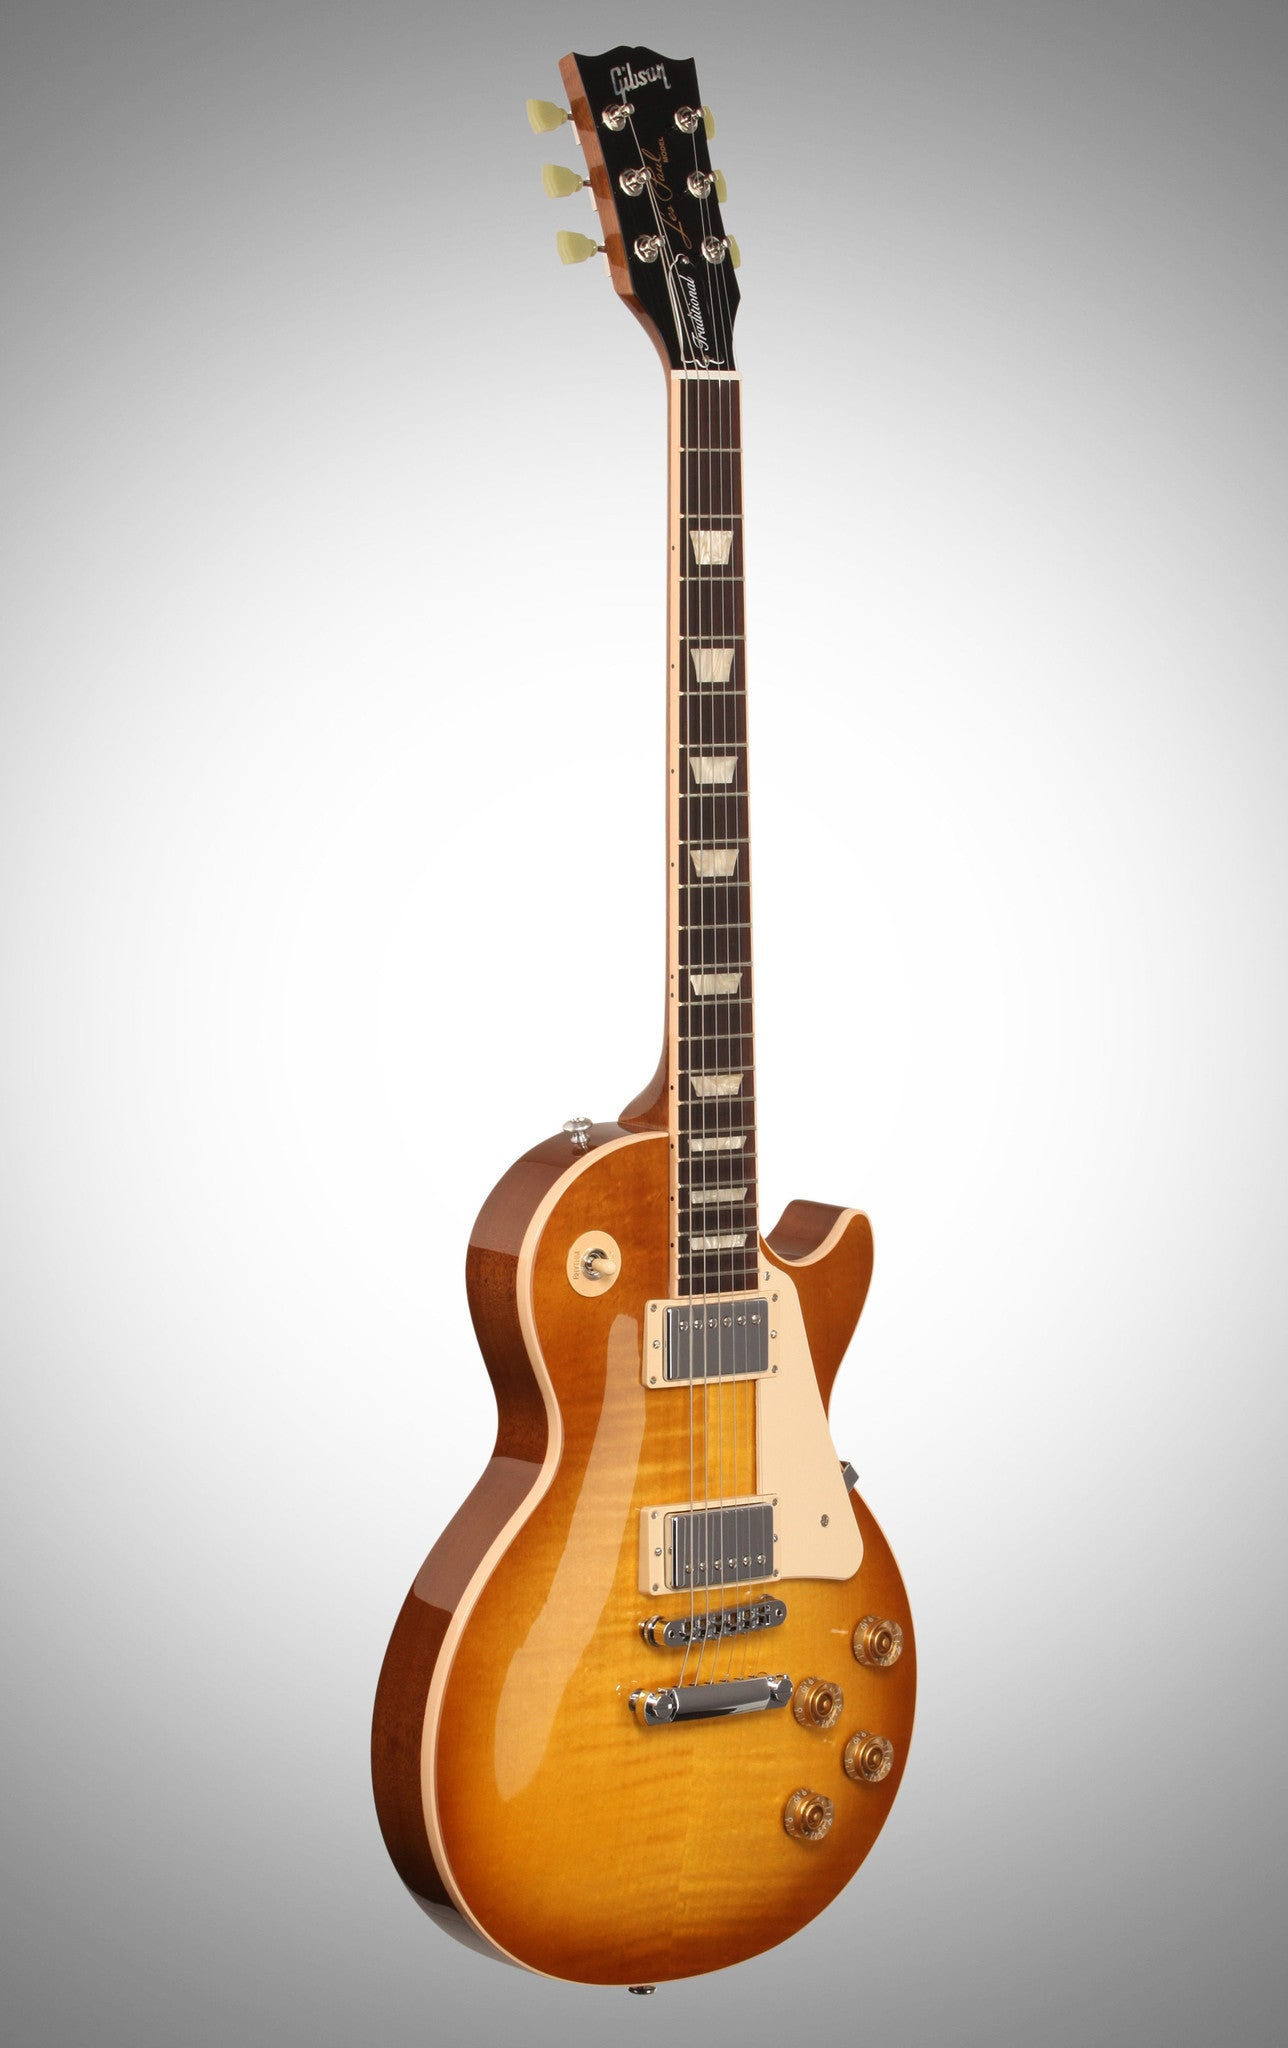 Gibson 2016 Les Paul Traditional Plus T Electric Guitar (with Case), Honeyburst Gibson - HIENDGUITAR.COM